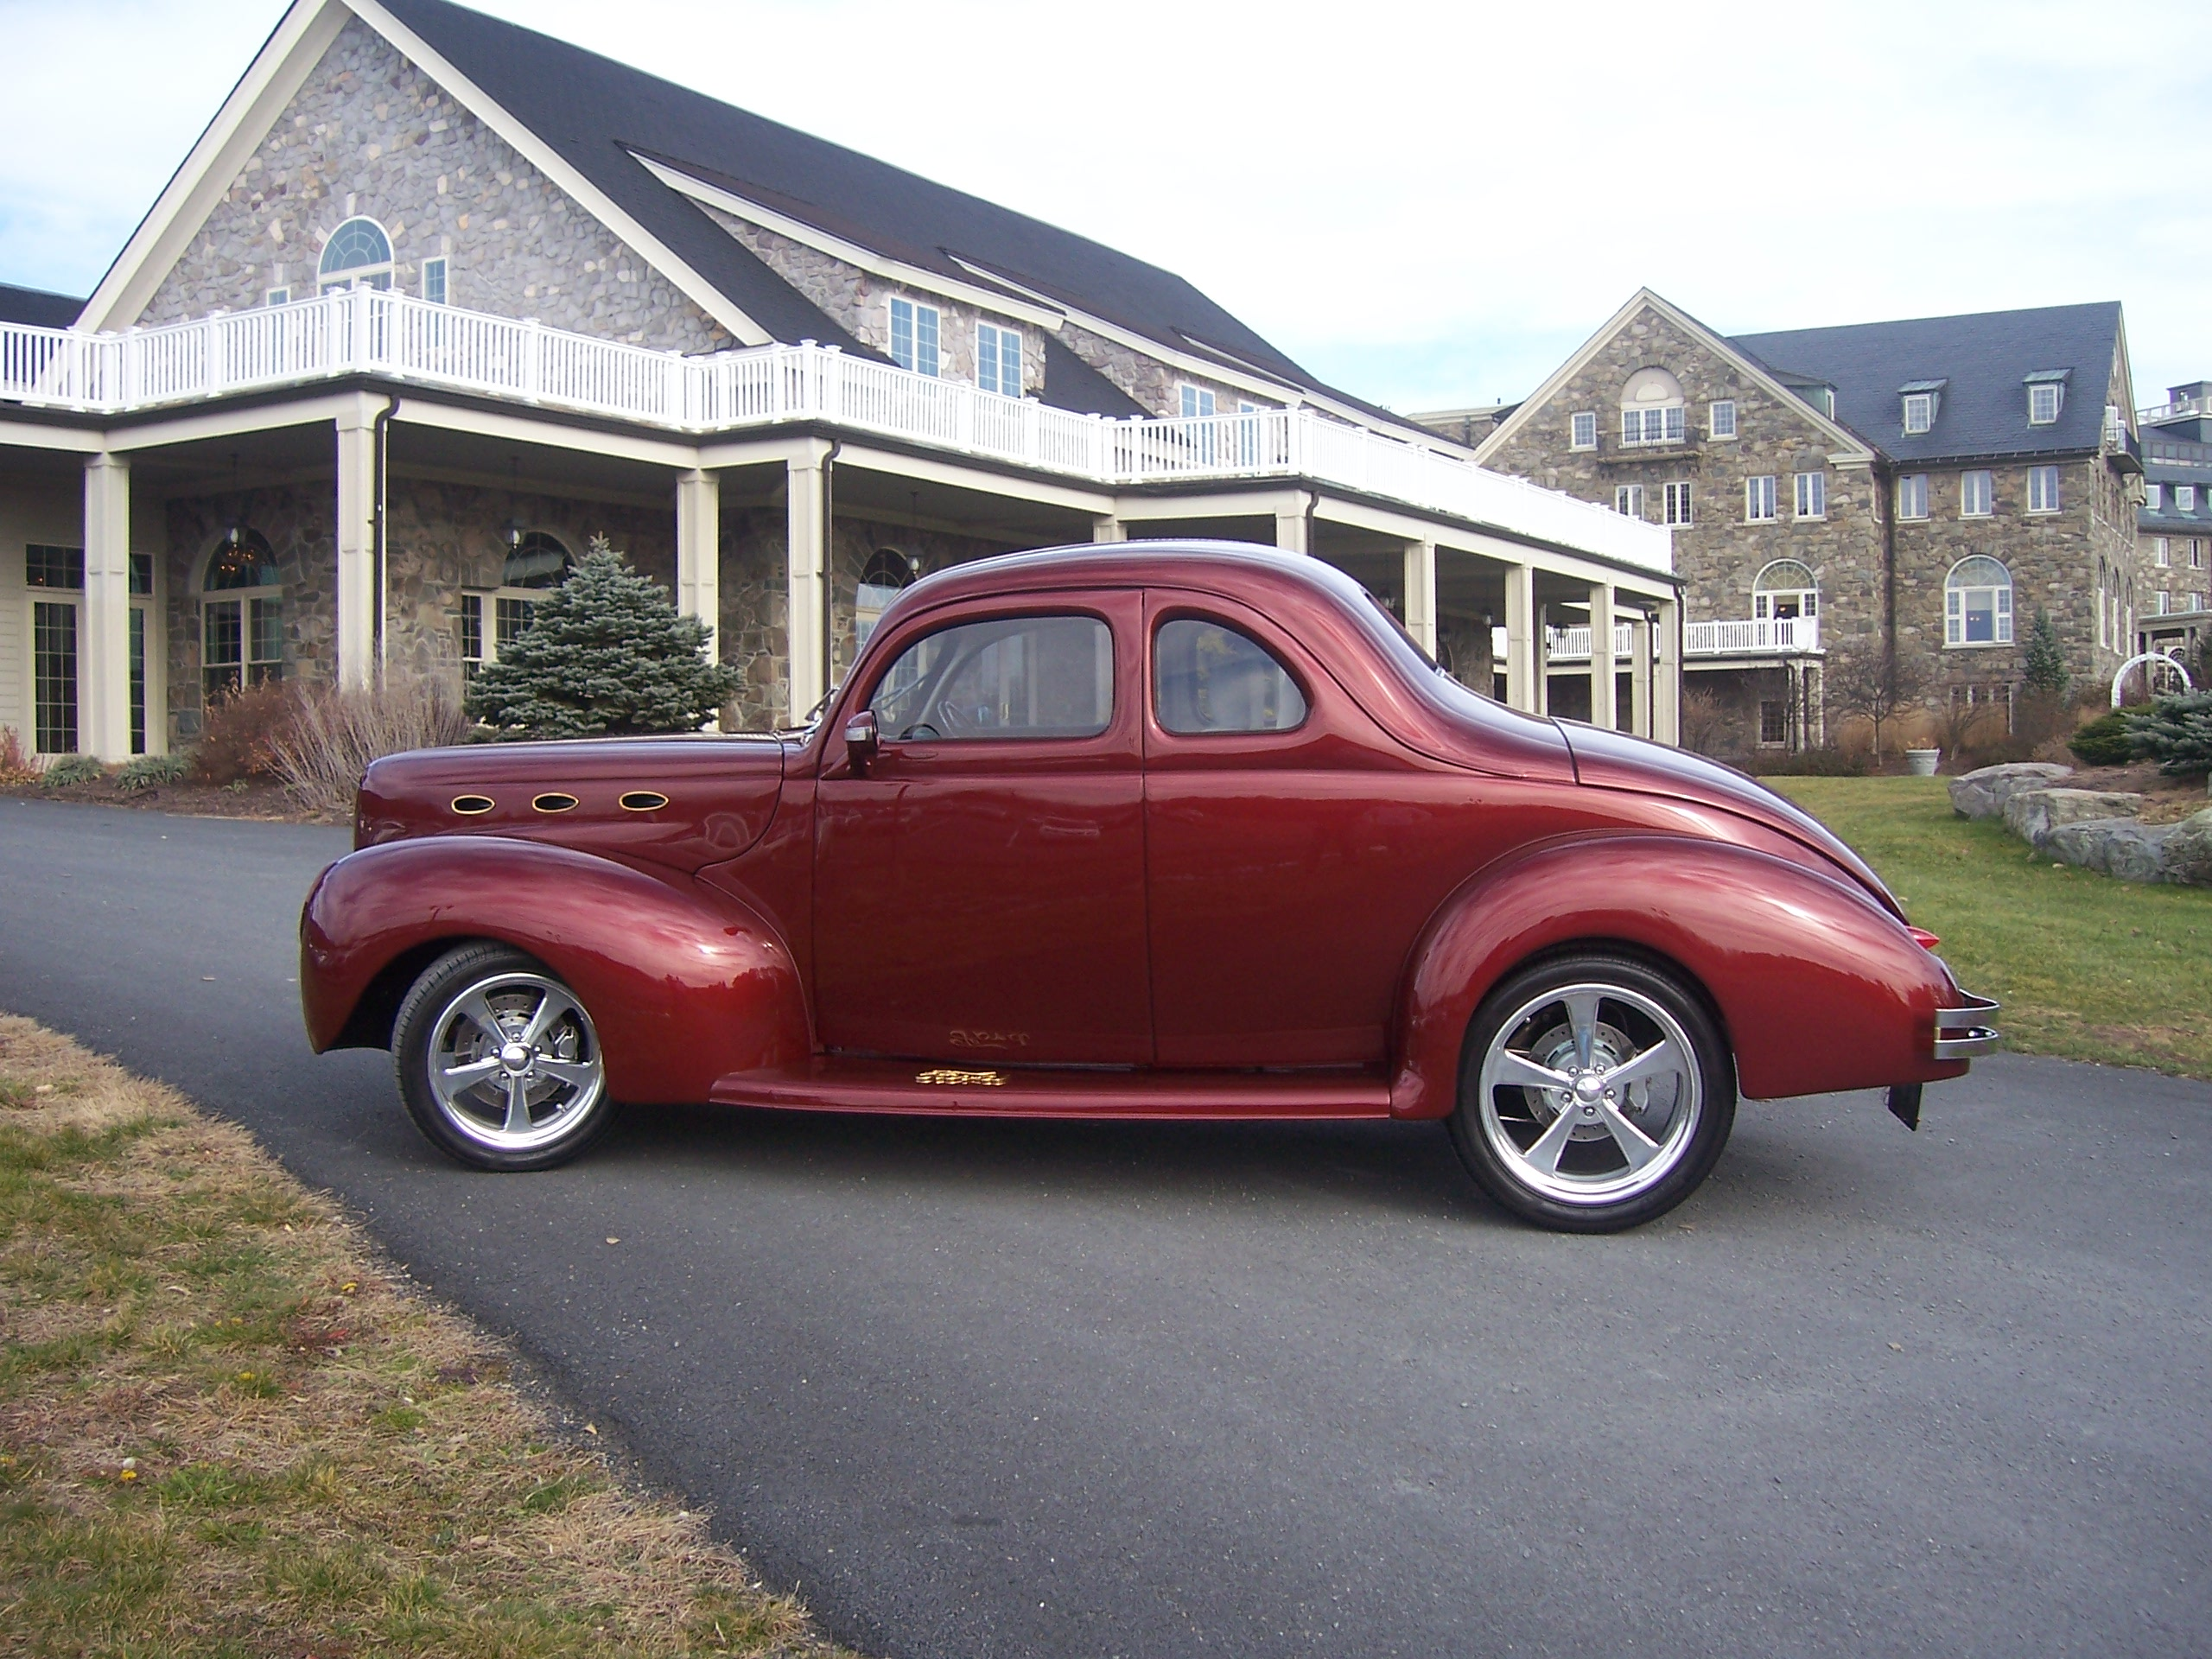 Richies Ford Coupe